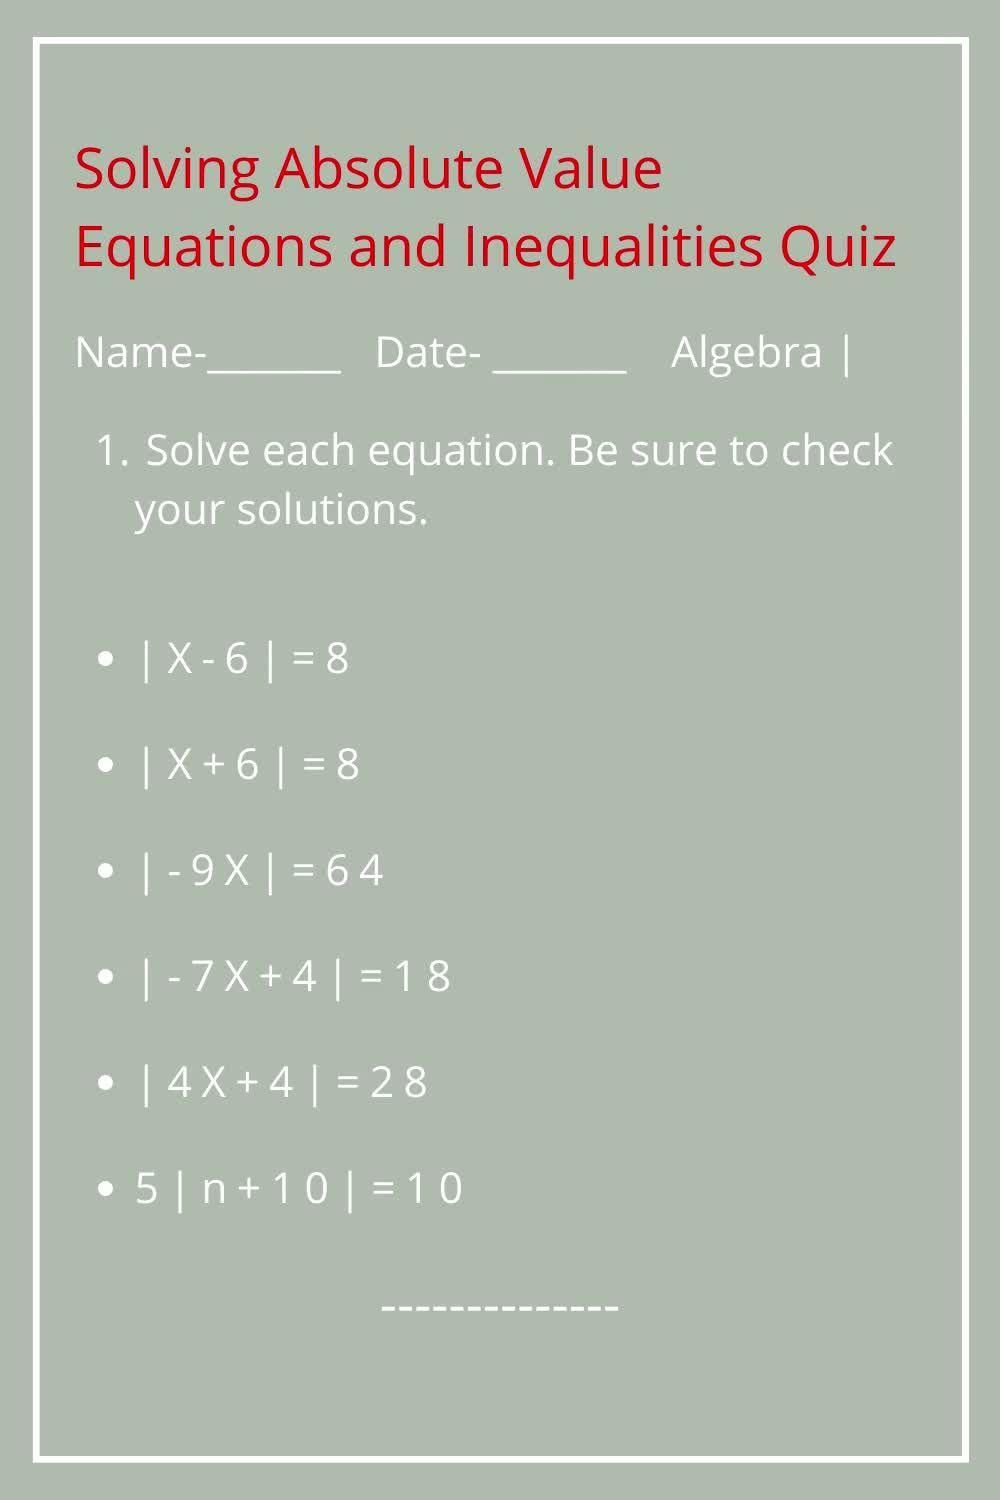 Solving Absolute Value Equations And Inequalities Printable Etsy Video Video Absolute Value Equations Homeschool Worksheets Absolute Value